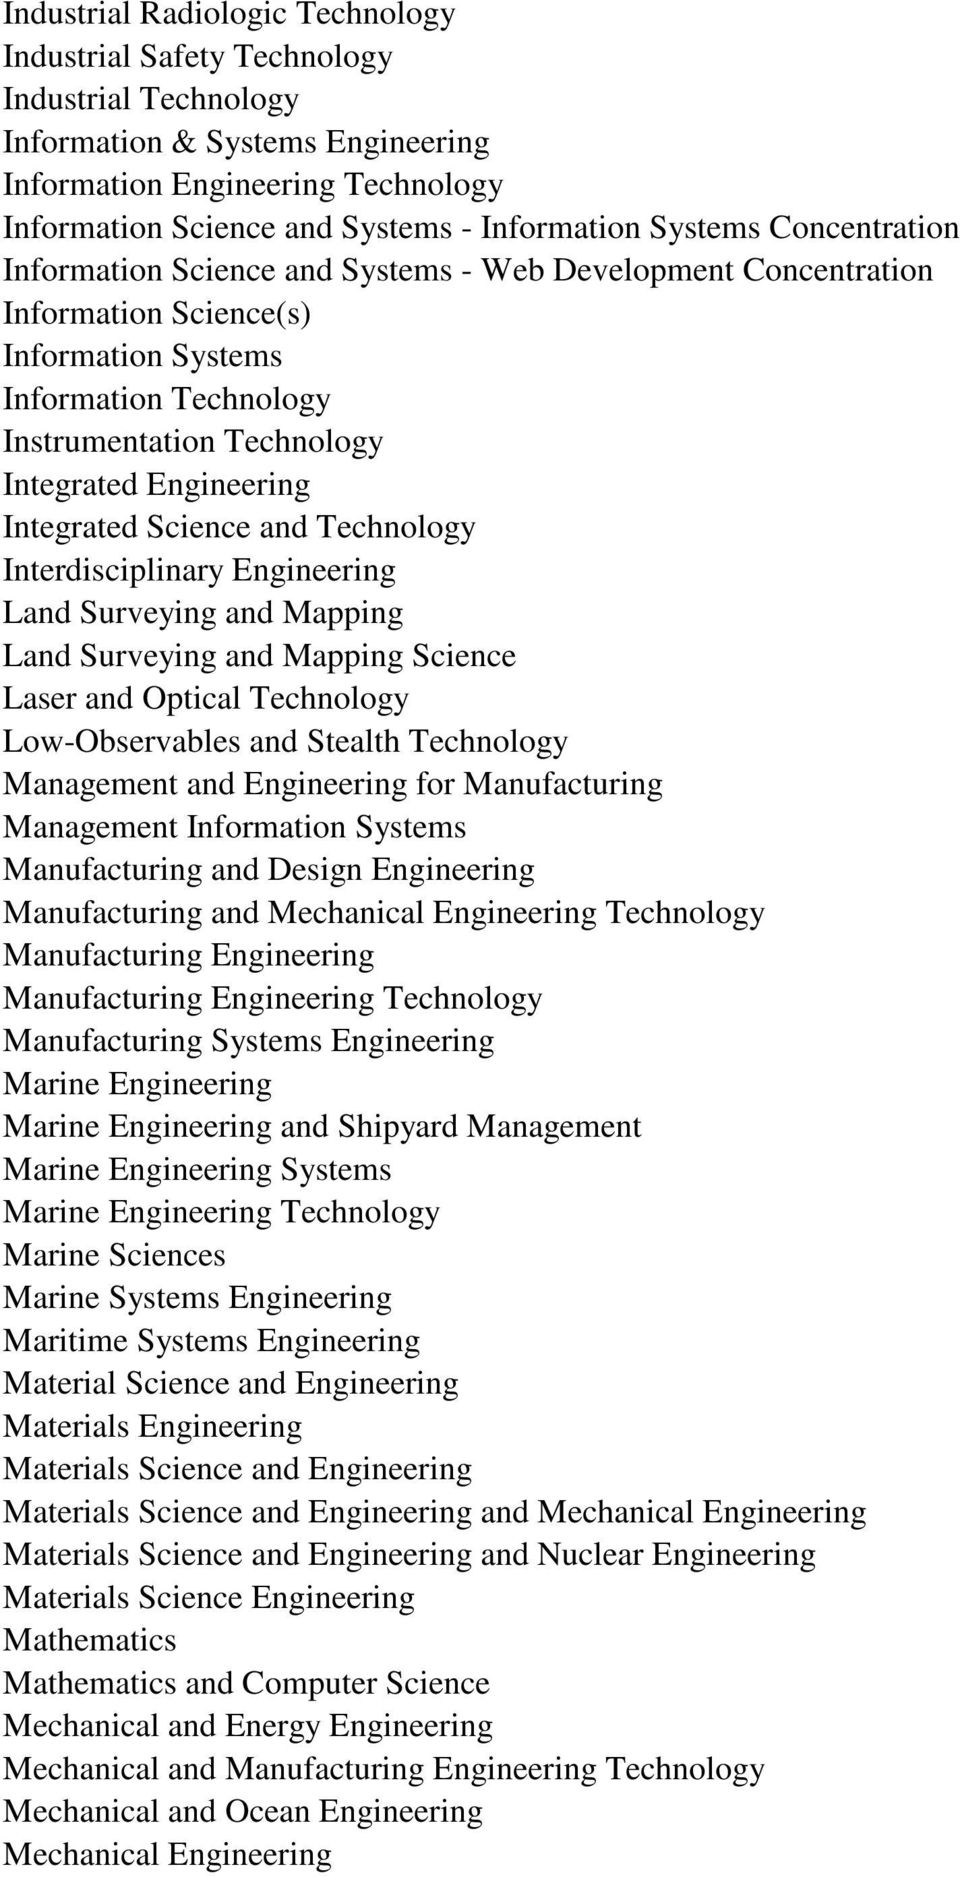 Engineering Integrated Science and Technology Interdisciplinary Engineering Land Surveying and Mapping Land Surveying and Mapping Science Laser and Optical Technology Low-Observables and Stealth